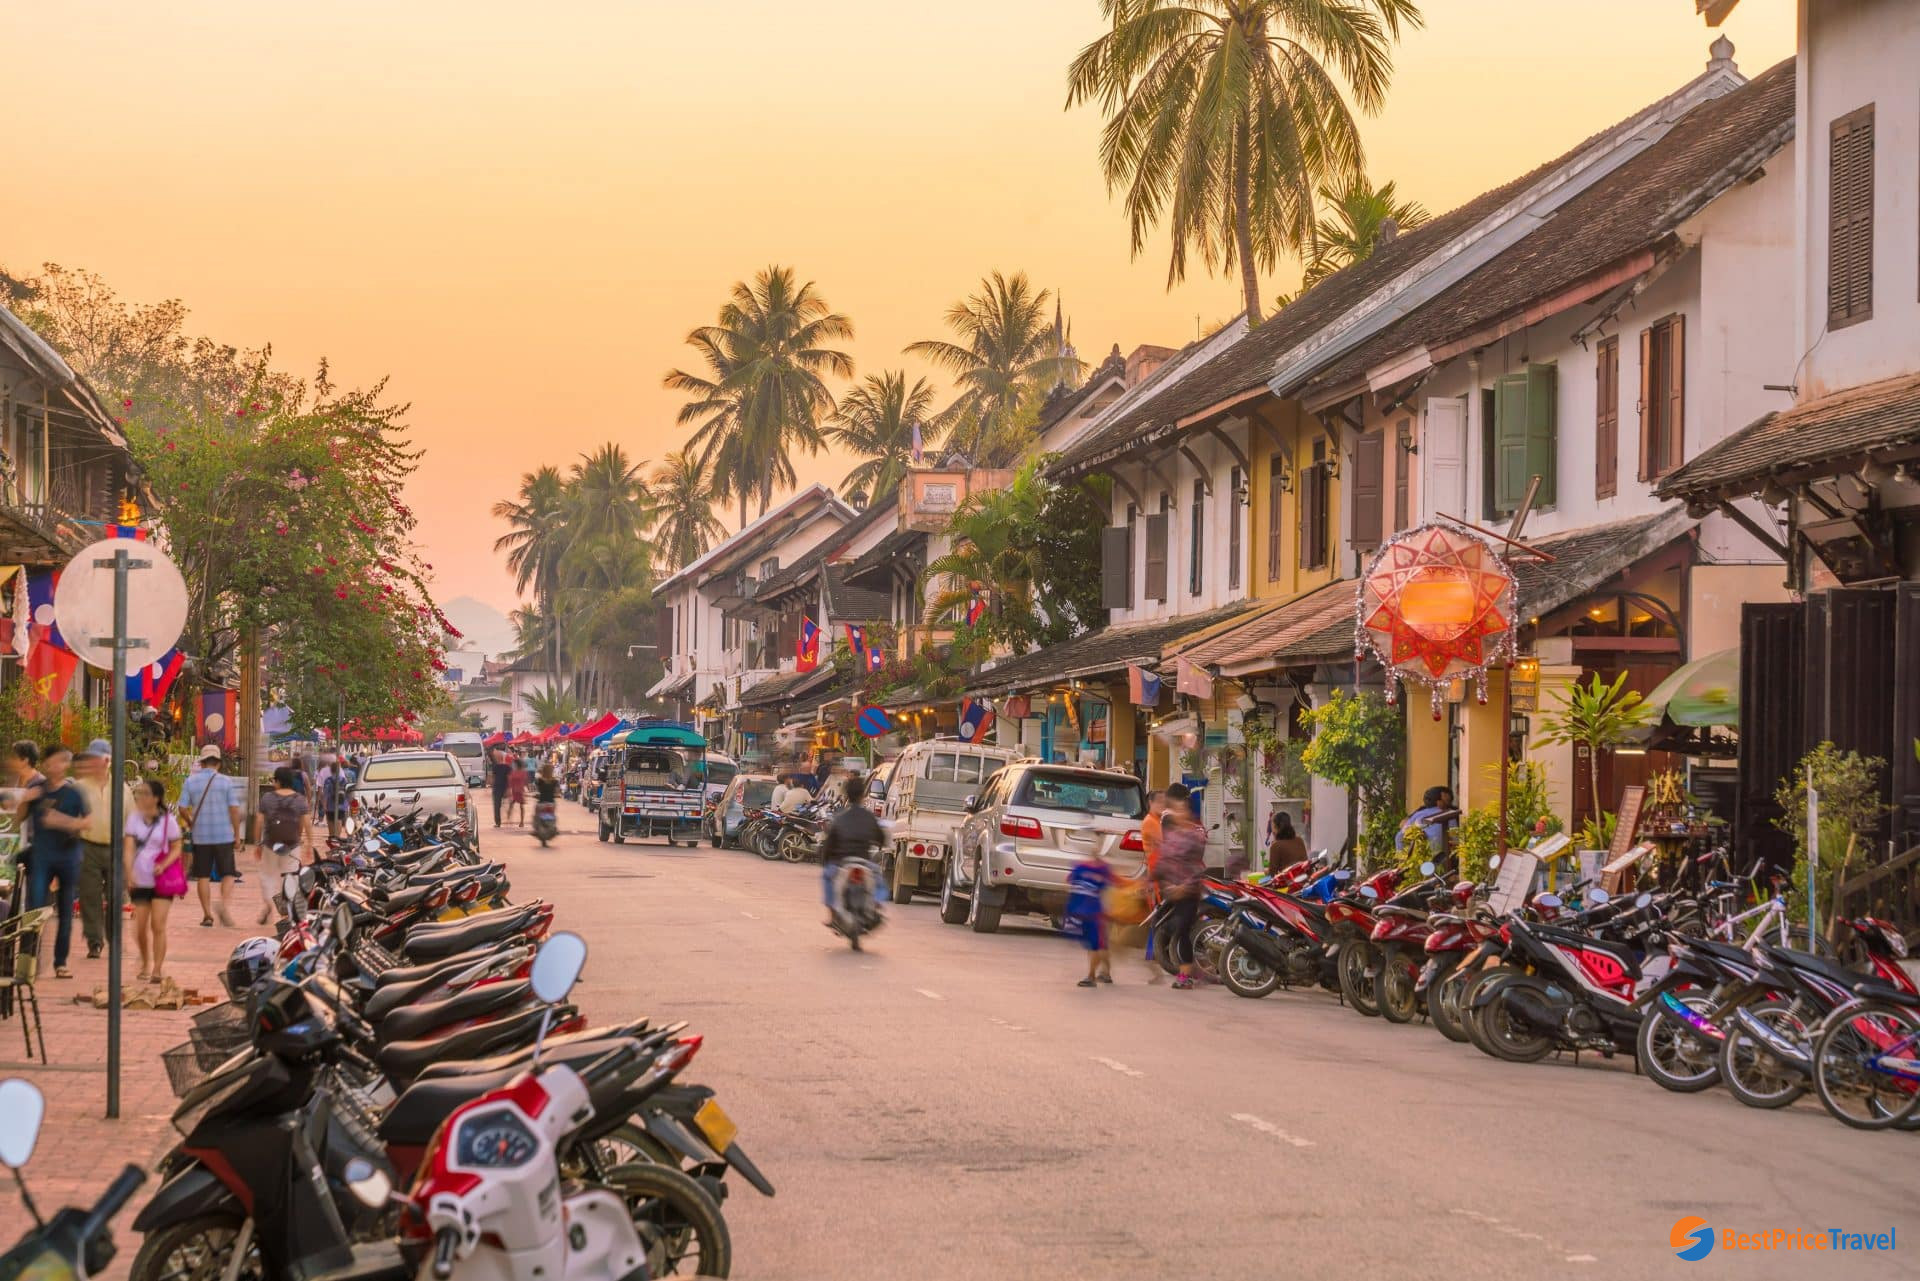 laos is one of the safest countries during coronavirus outbreak